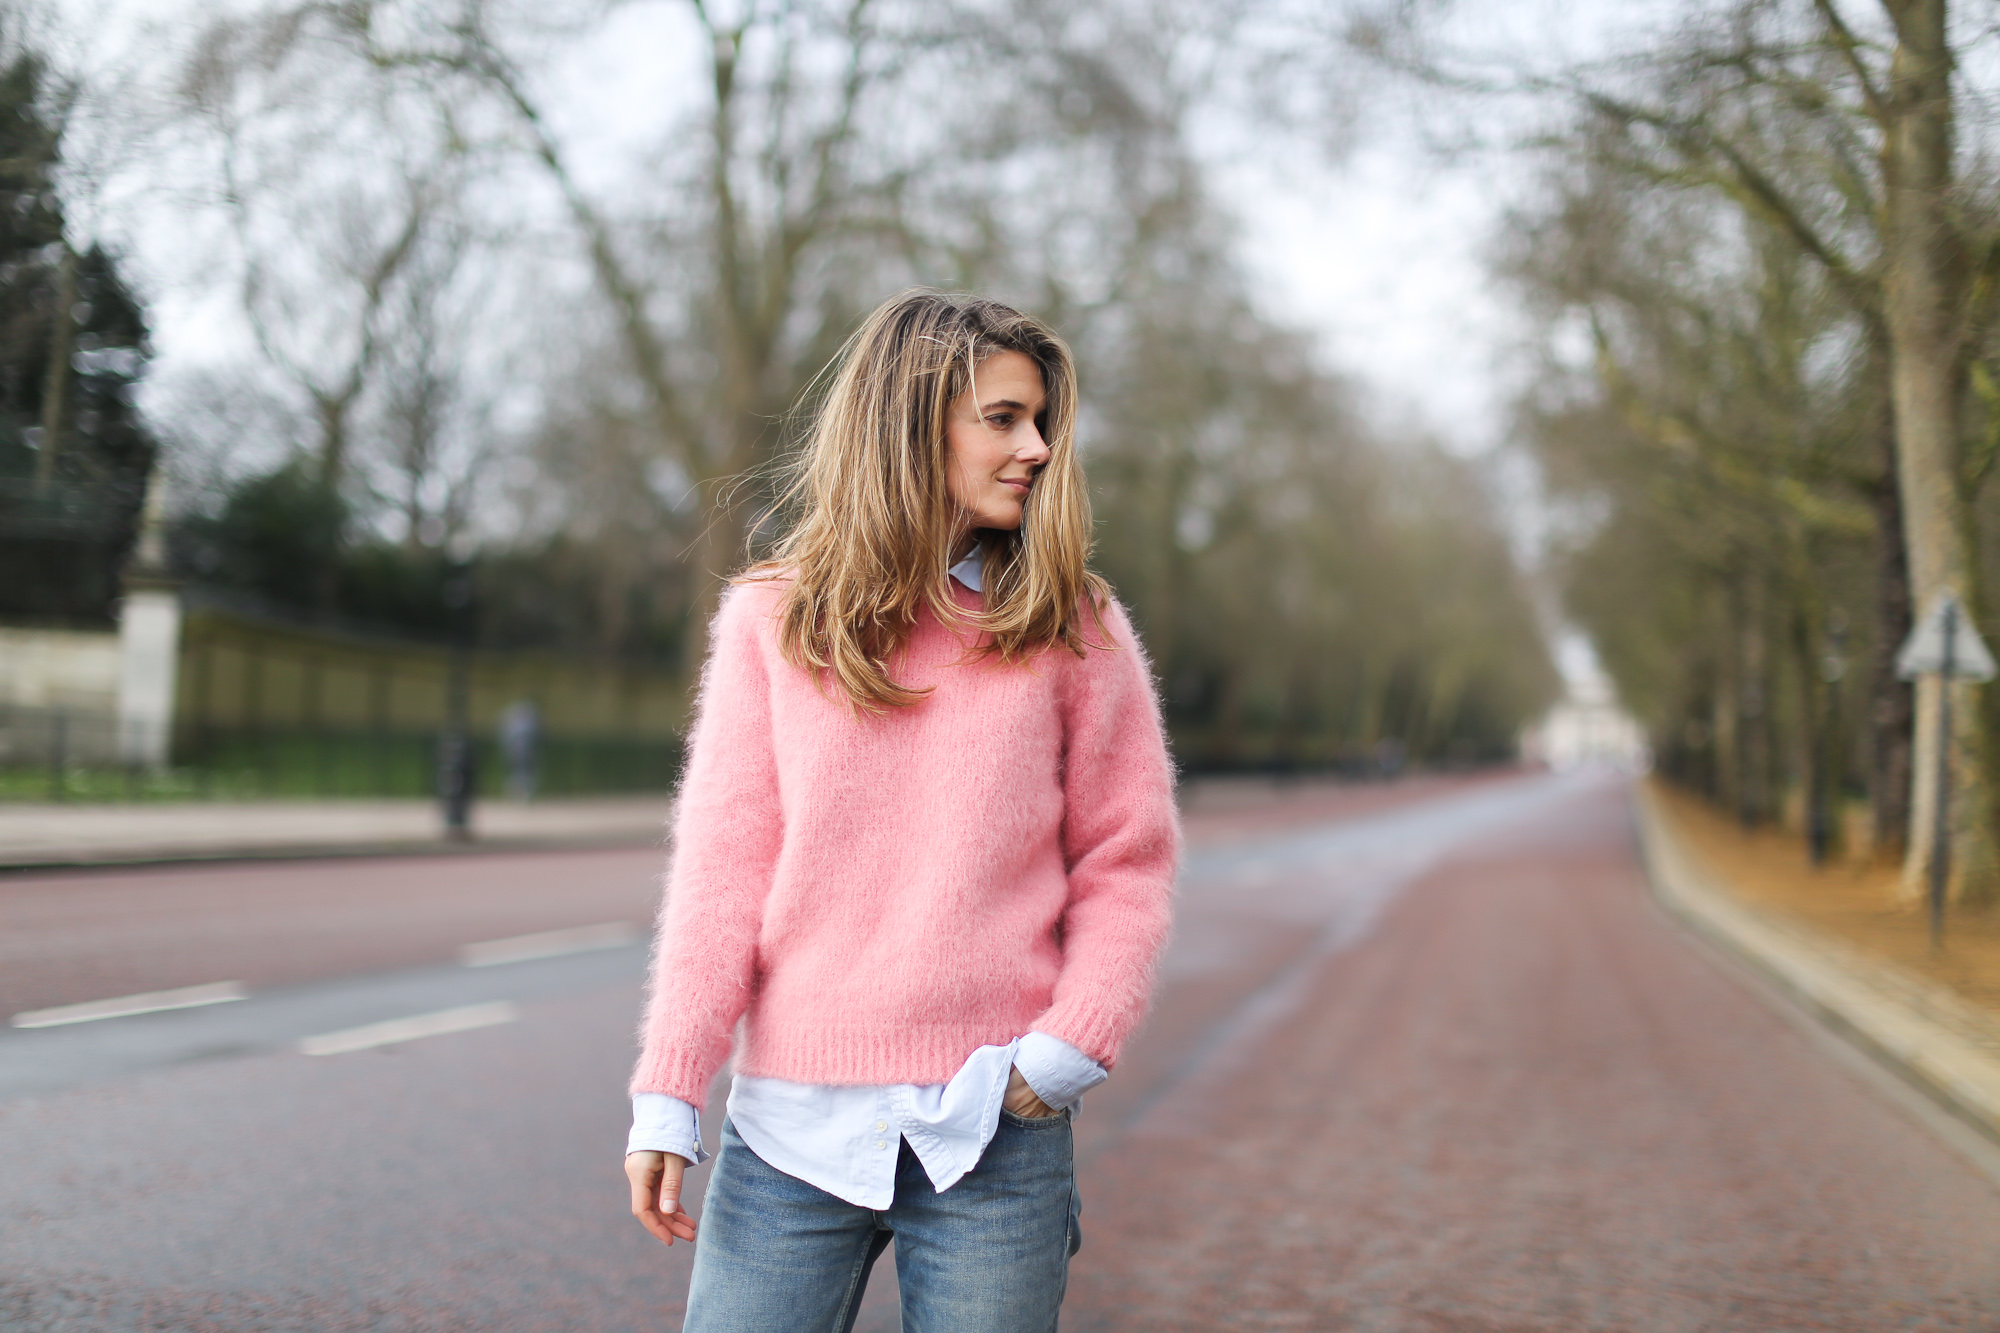 Clochet_streetstyle_london_fashion_week_bimba&lola_pink_mohair_knit-9